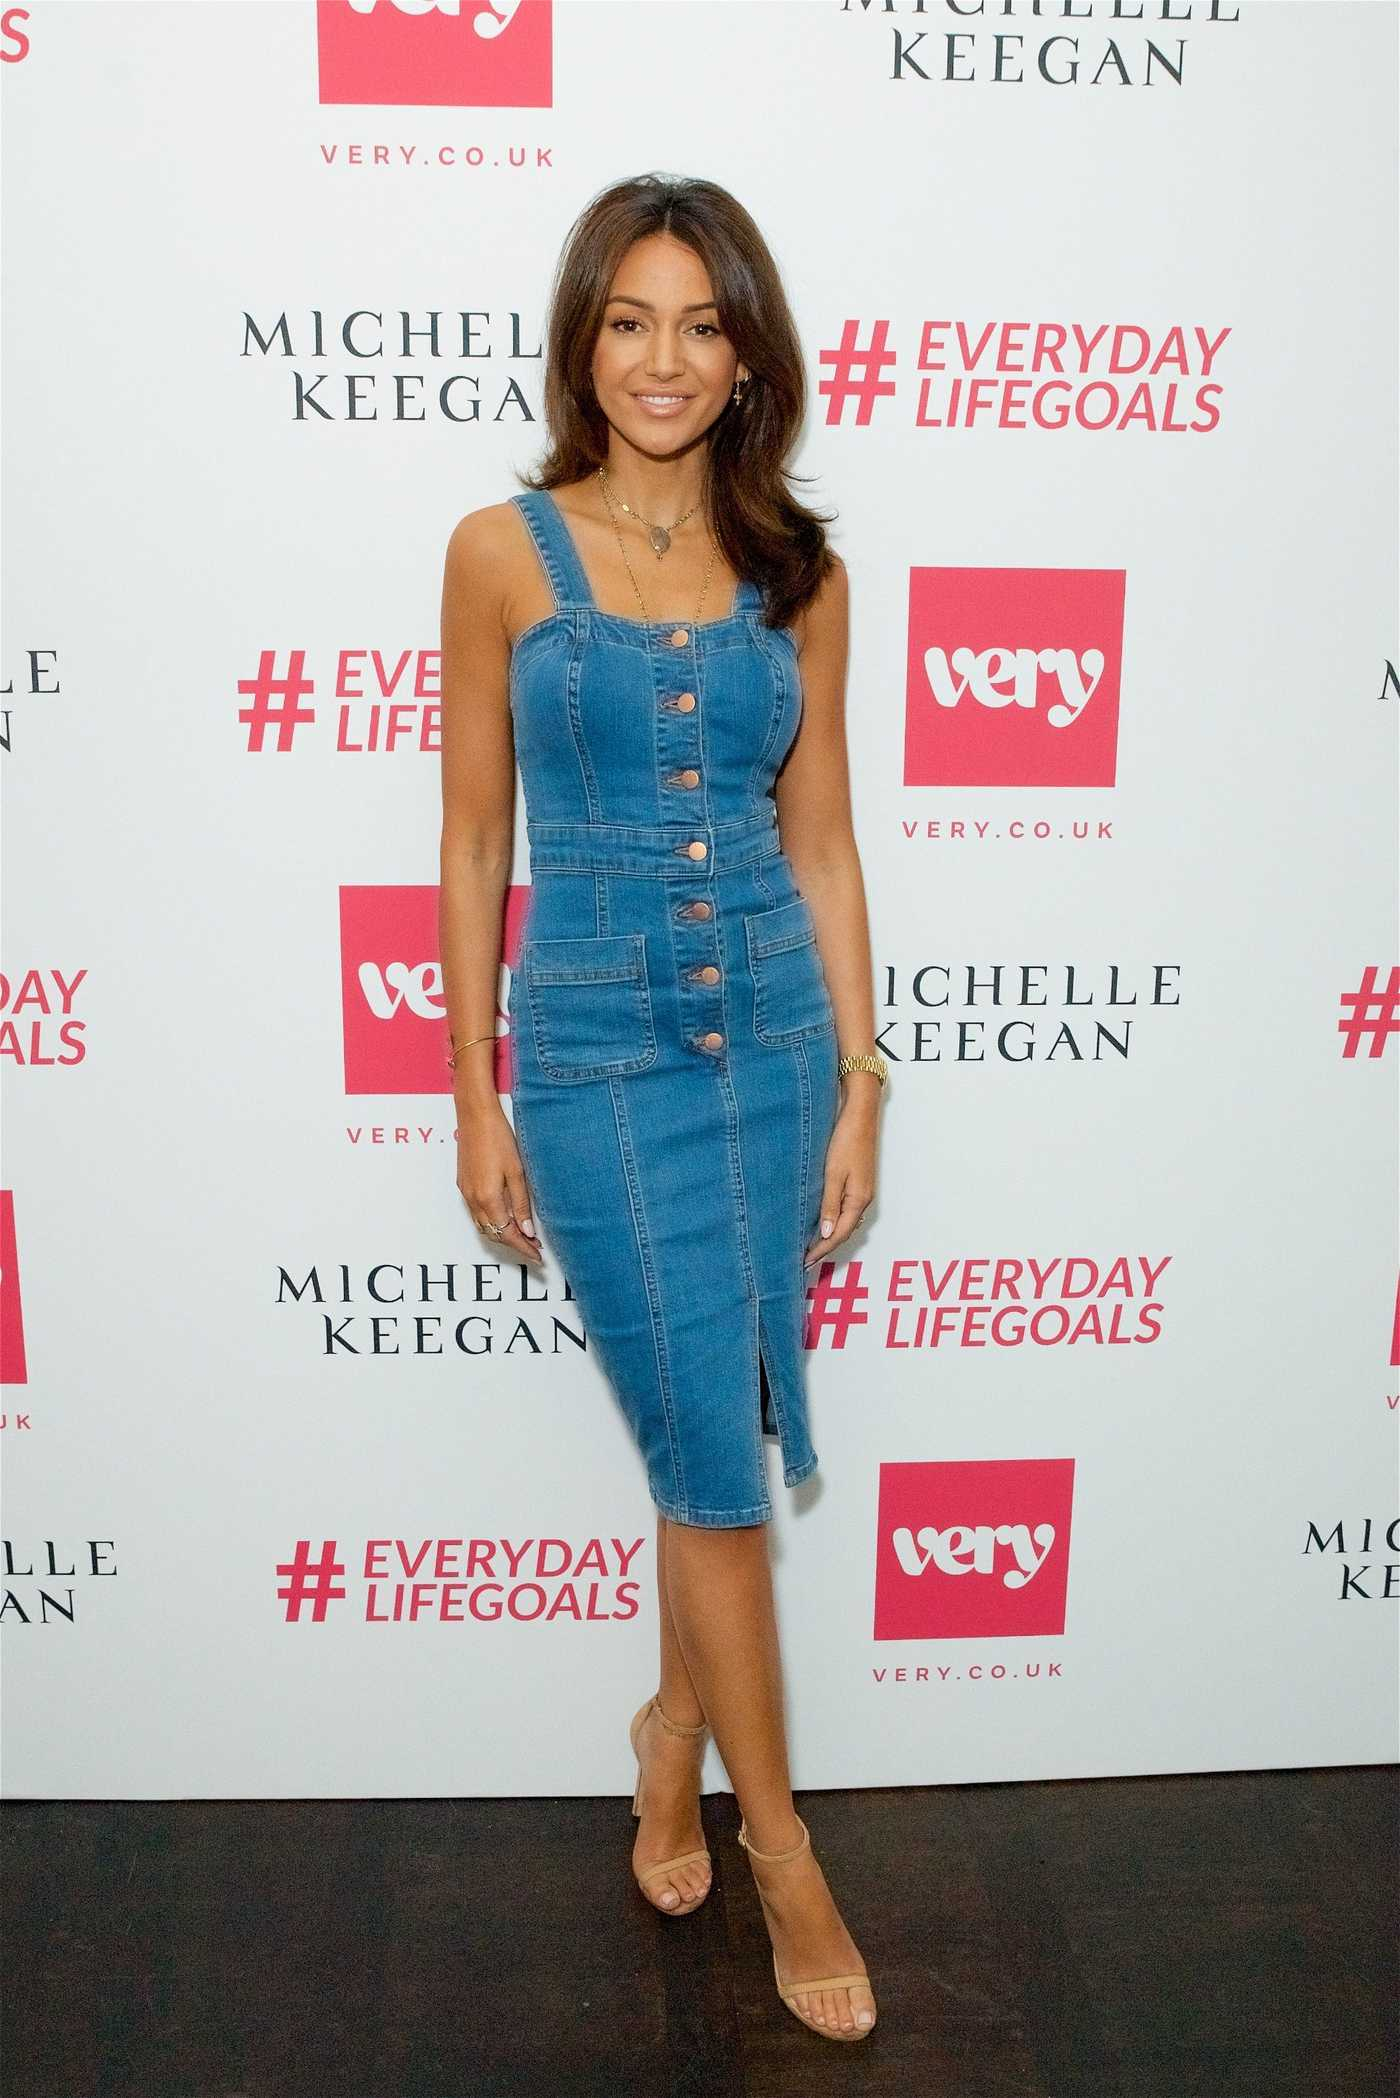 Michelle Keegan at Her Very Collection Launch Party in London 06/04/2018